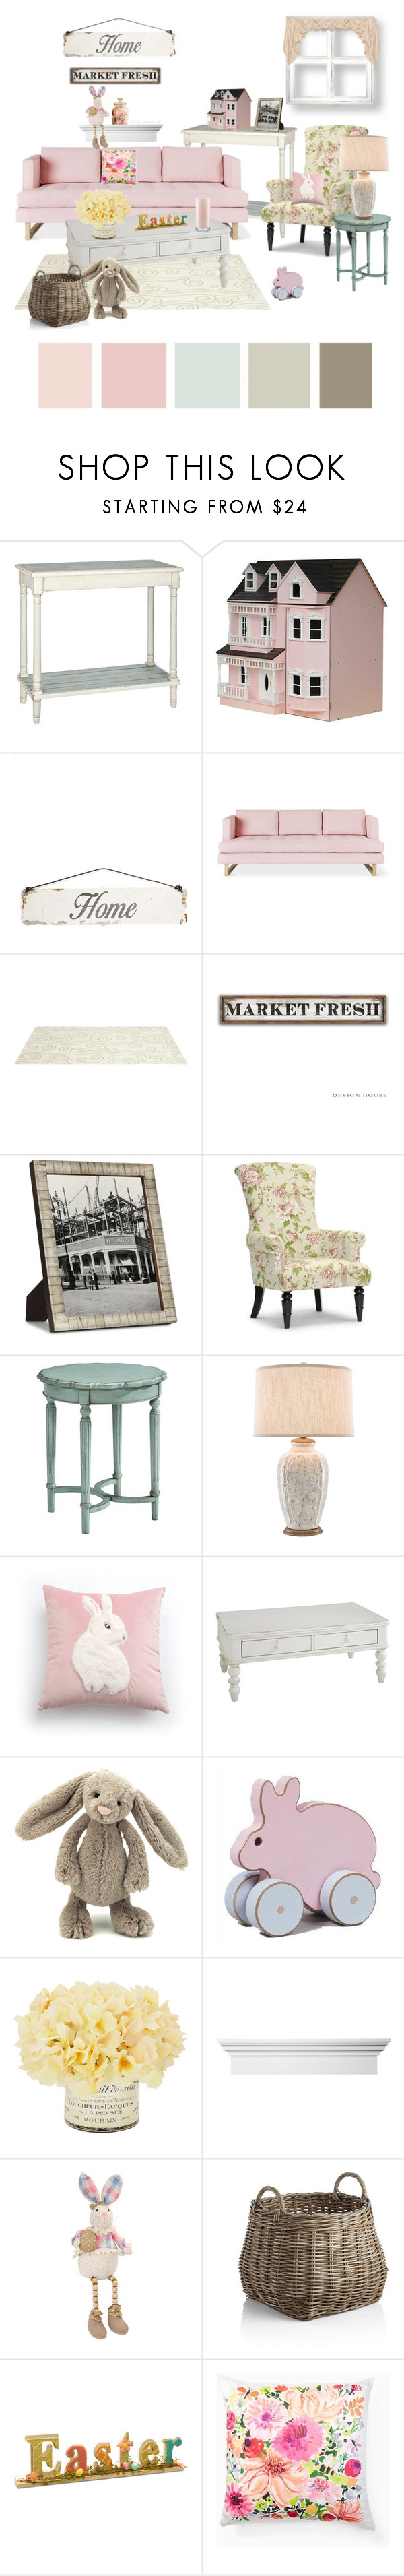 """Color Challenge: Pastels"" by kim-mcculley ❤ liked on Polyvore featuring interior, interiors, interior design, home, home decor, interior decorating, Streets Ahead, Poncho & Goldstein, Gus* Modern and Somerset Bay"